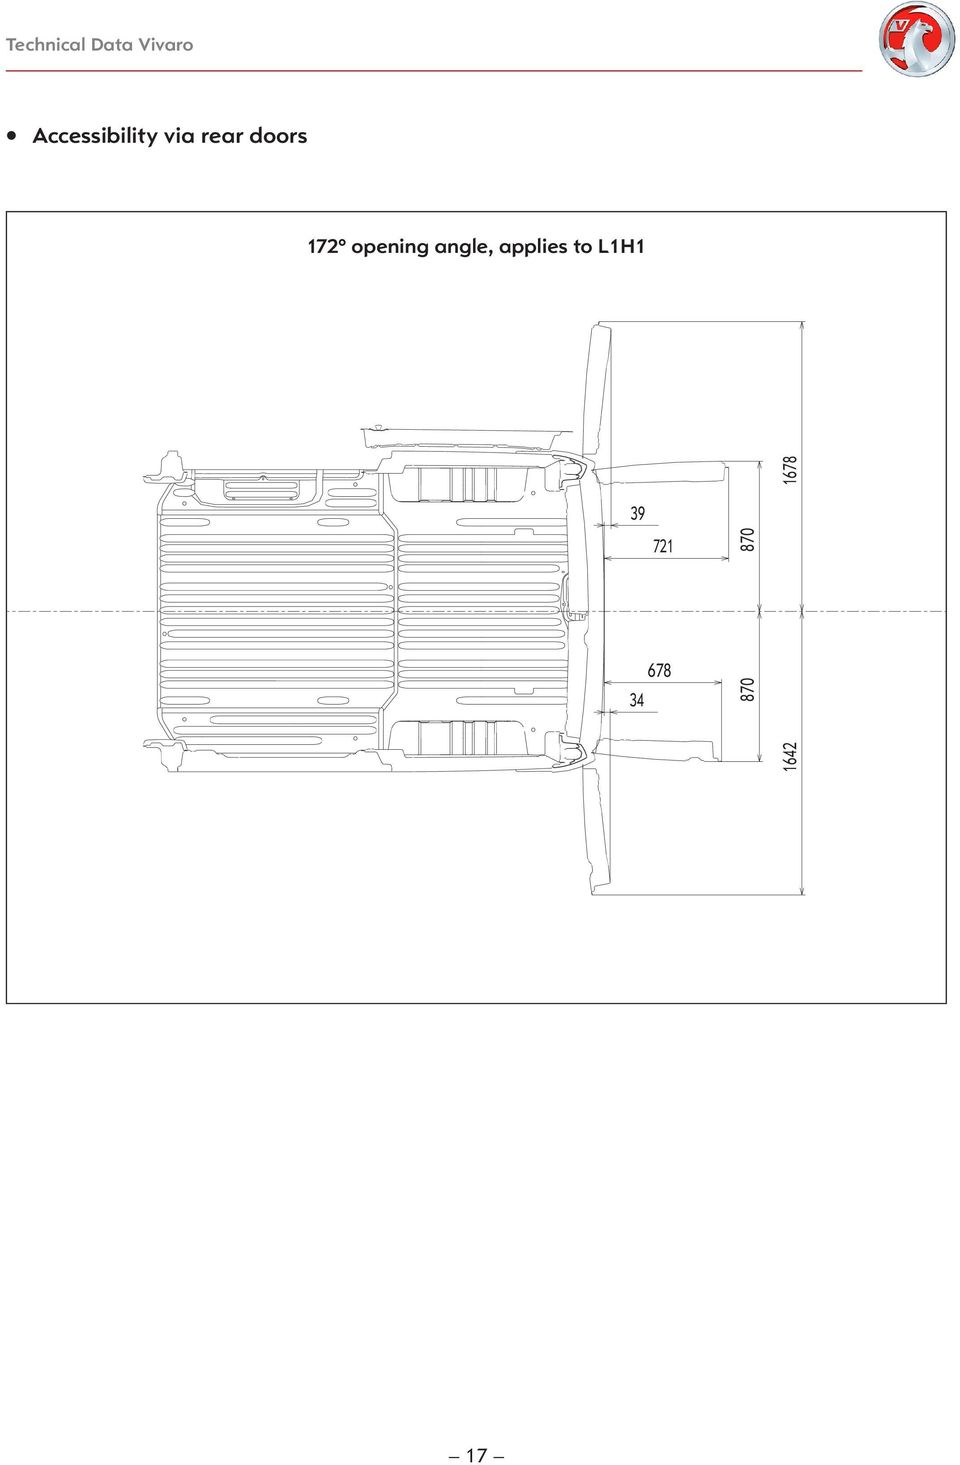 Technical Data Vivaro List Of Contents Pdf Air Conditioning C60 Overhead System Wiring Diagram G Models For Applies To L1h1 870 1642